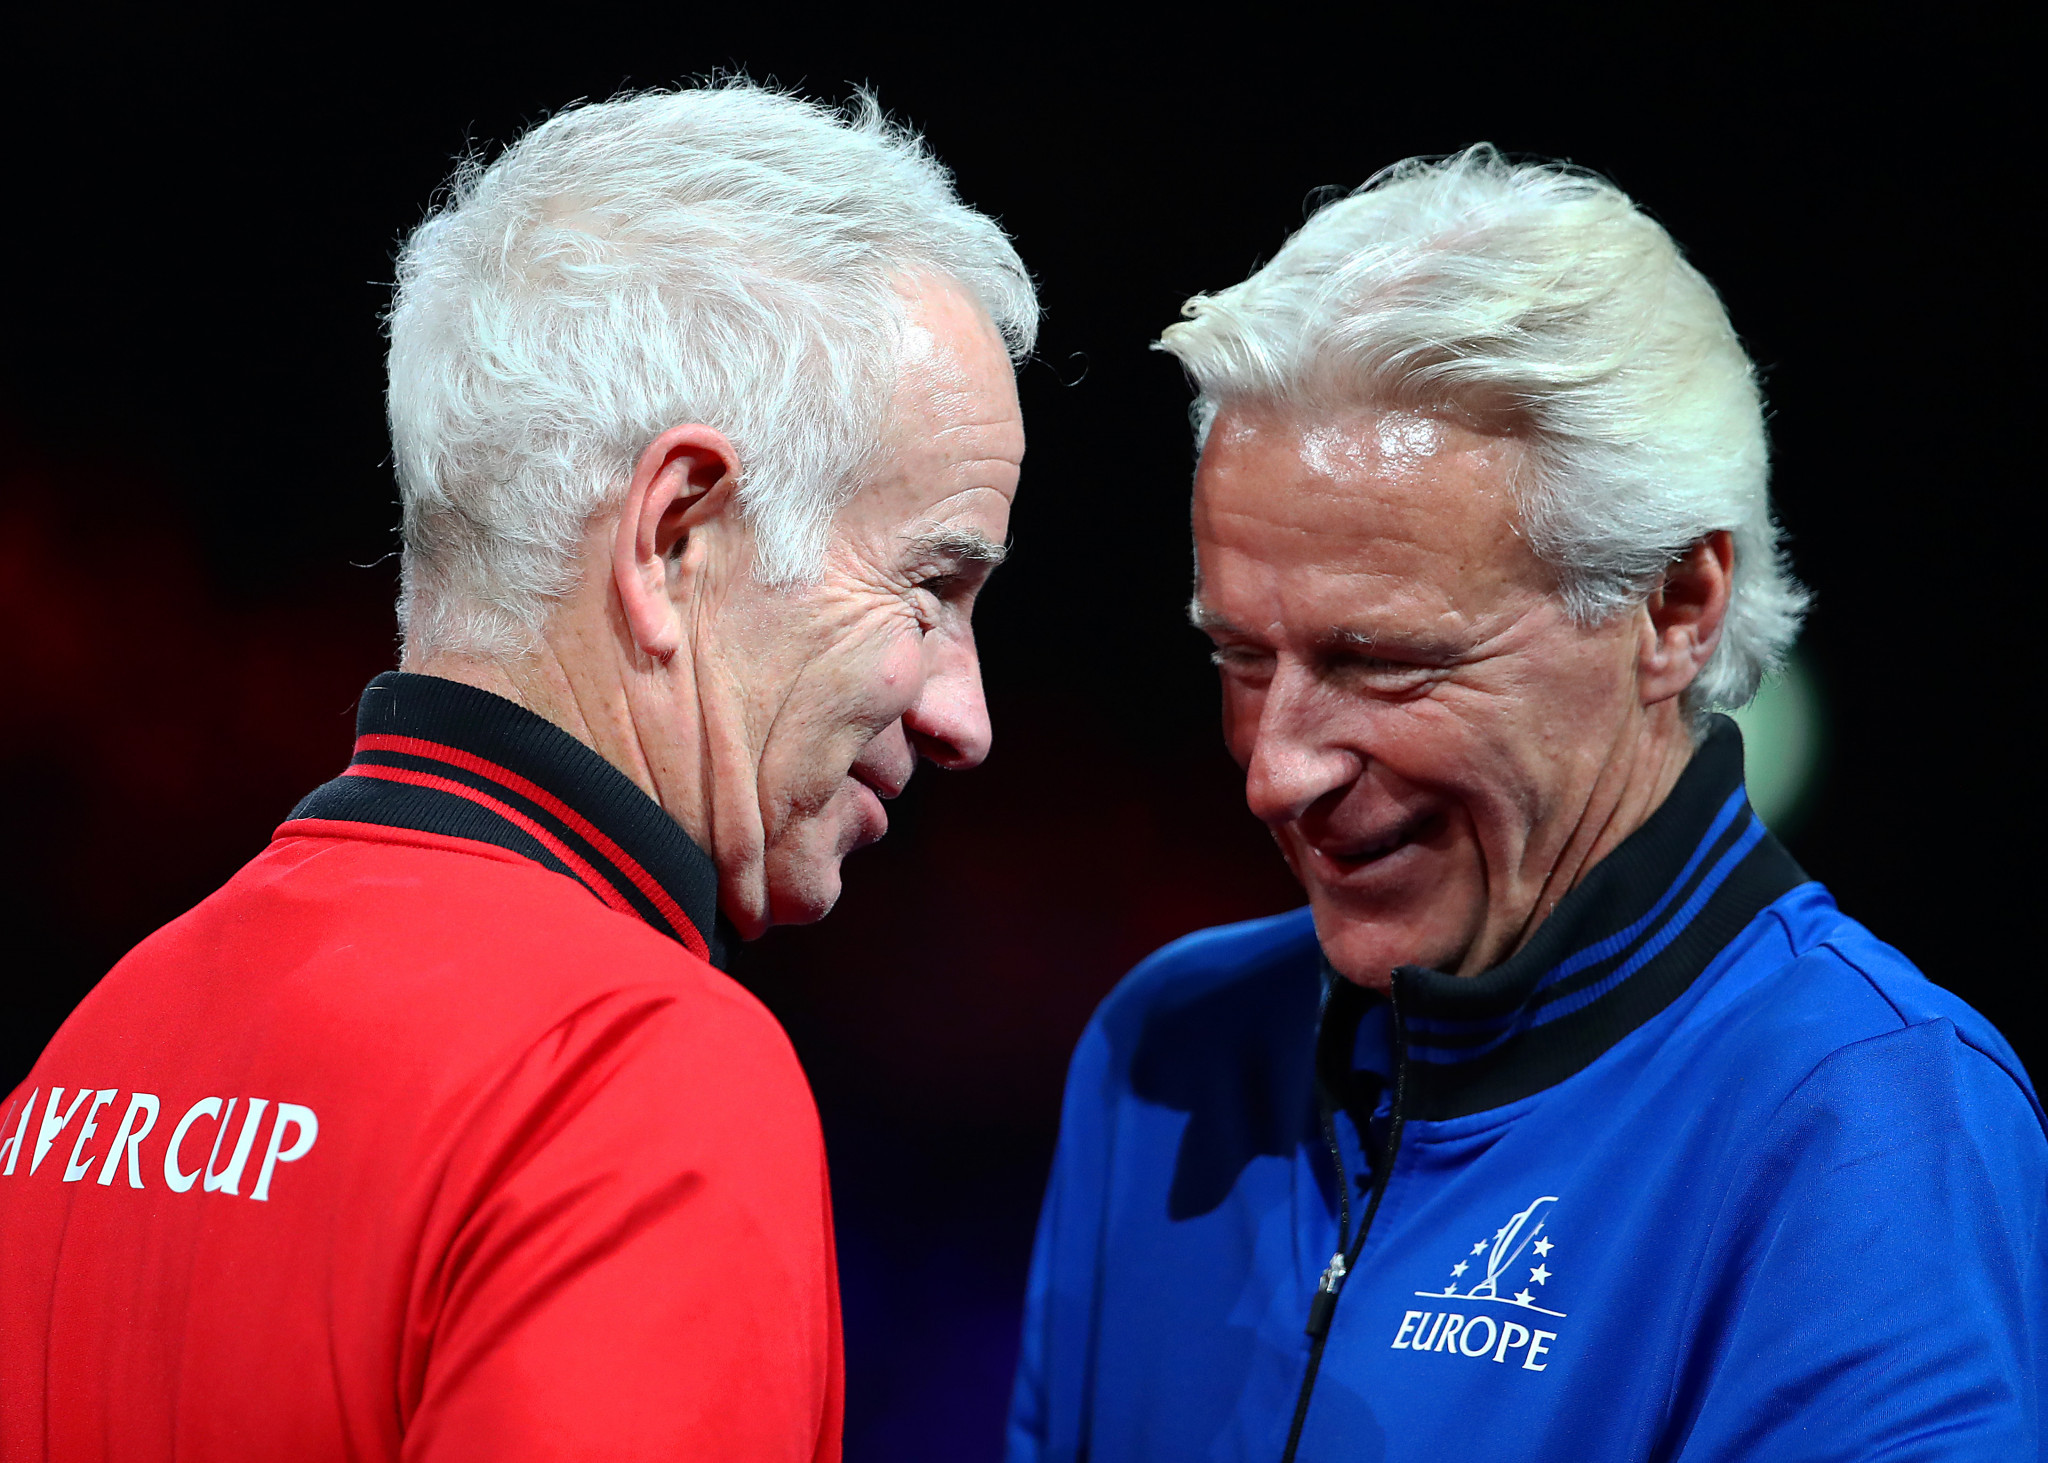 Face-to-face again, John McEnroe and Bjorn Bjorg, respective non-playing captains for Team World and Team Europe before the 2019 Laver Cup ©Getty Images